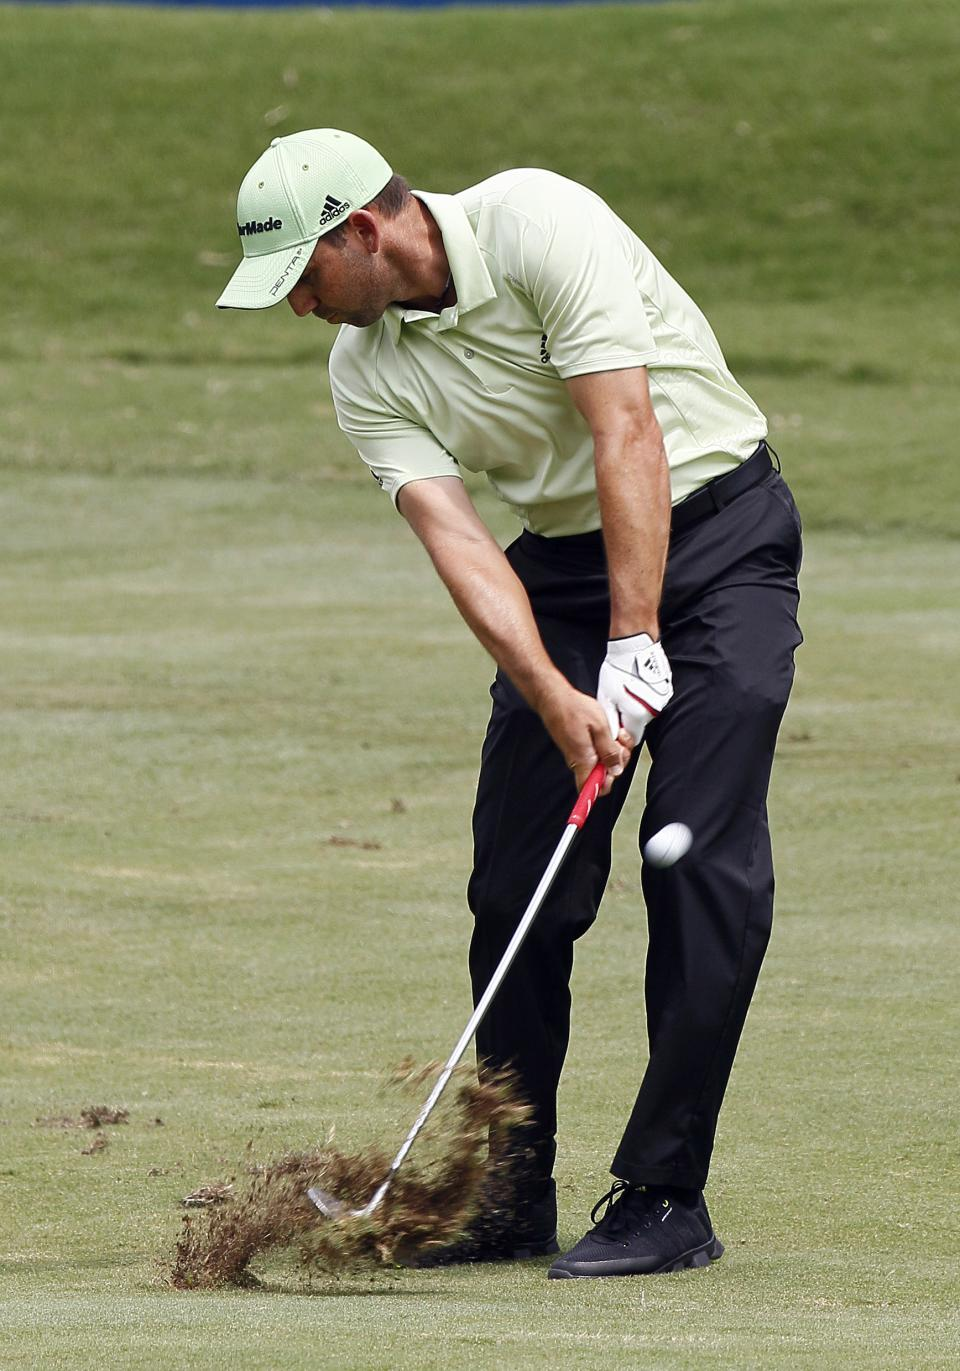 Sergio Garcia, of Spain, hits from the first fairway during the third round of the Wyndham Championship golf tournament in Greensboro, N.C., Saturday, Aug. 18, 2012. (AP Photo/Gerry Broome)